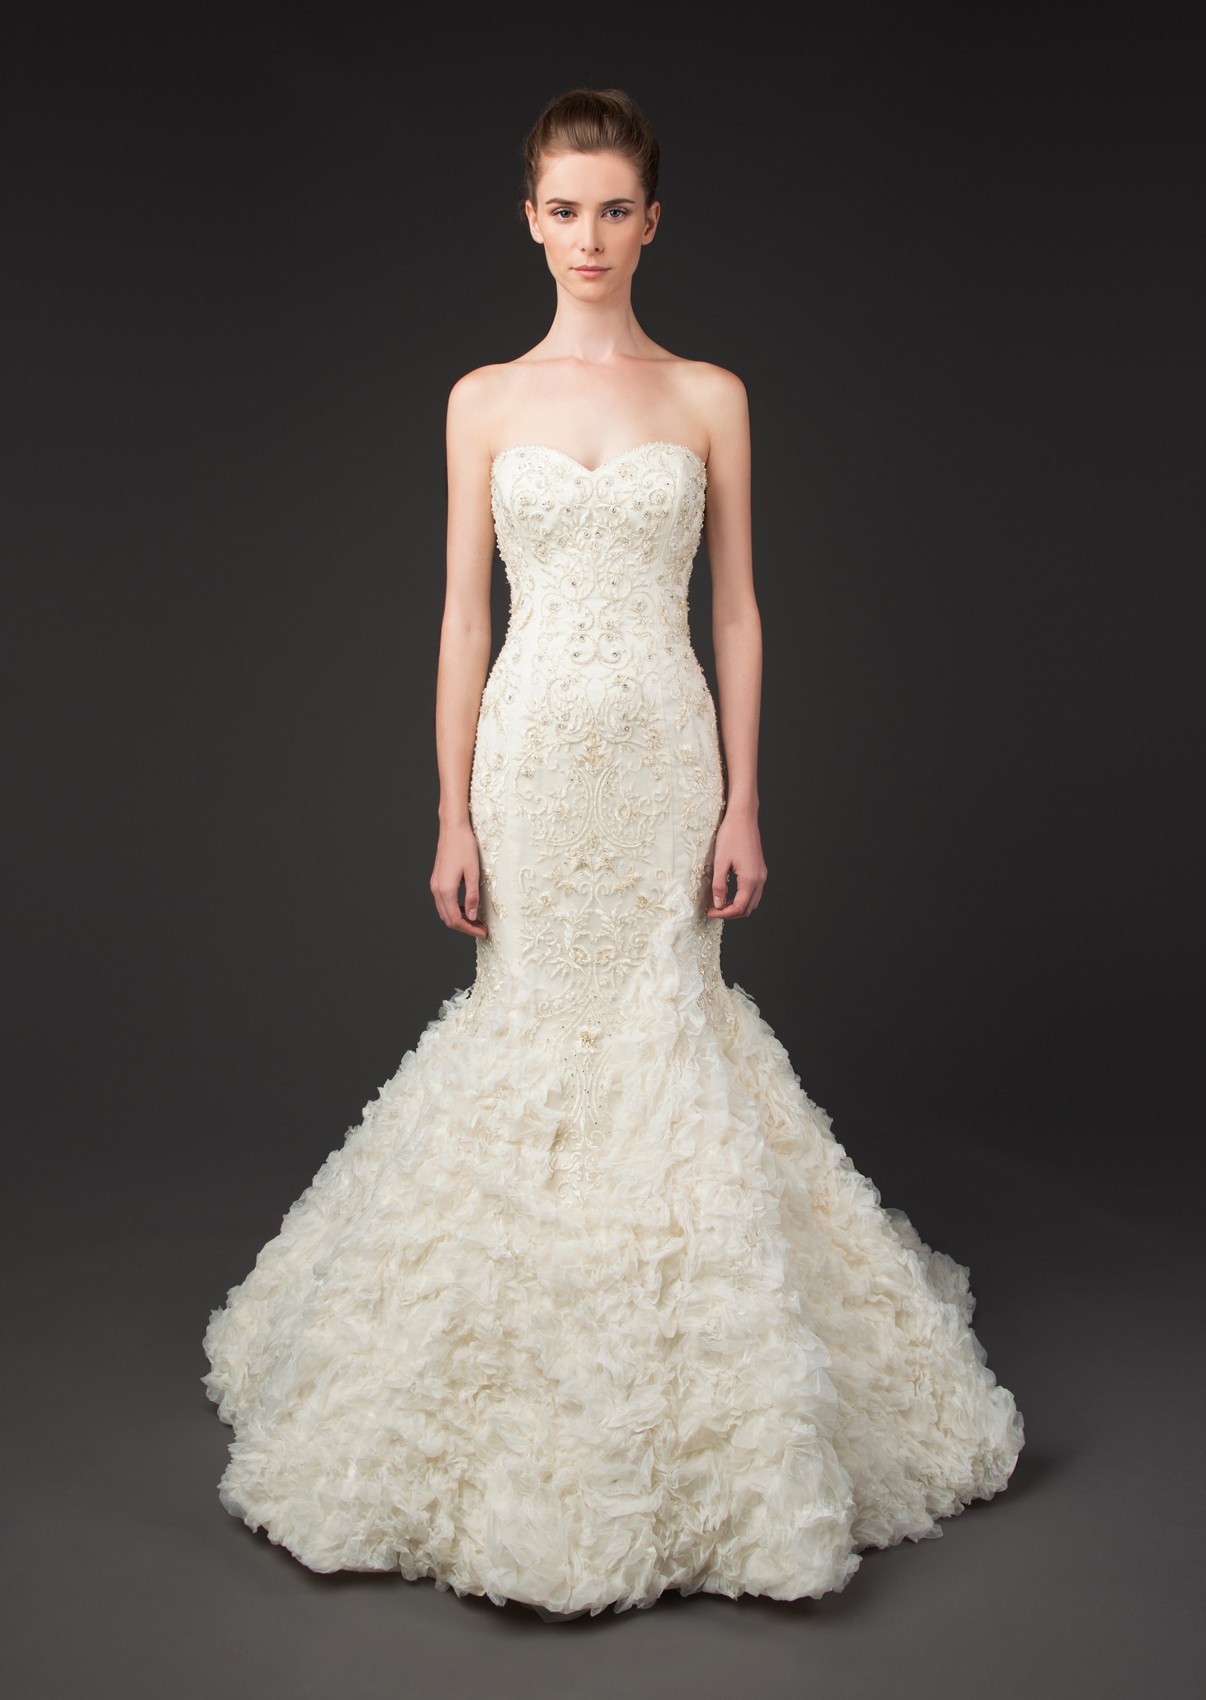 winnie-couture-wedding-dresses-fall-2014-diamond-label-collection-11-01202014